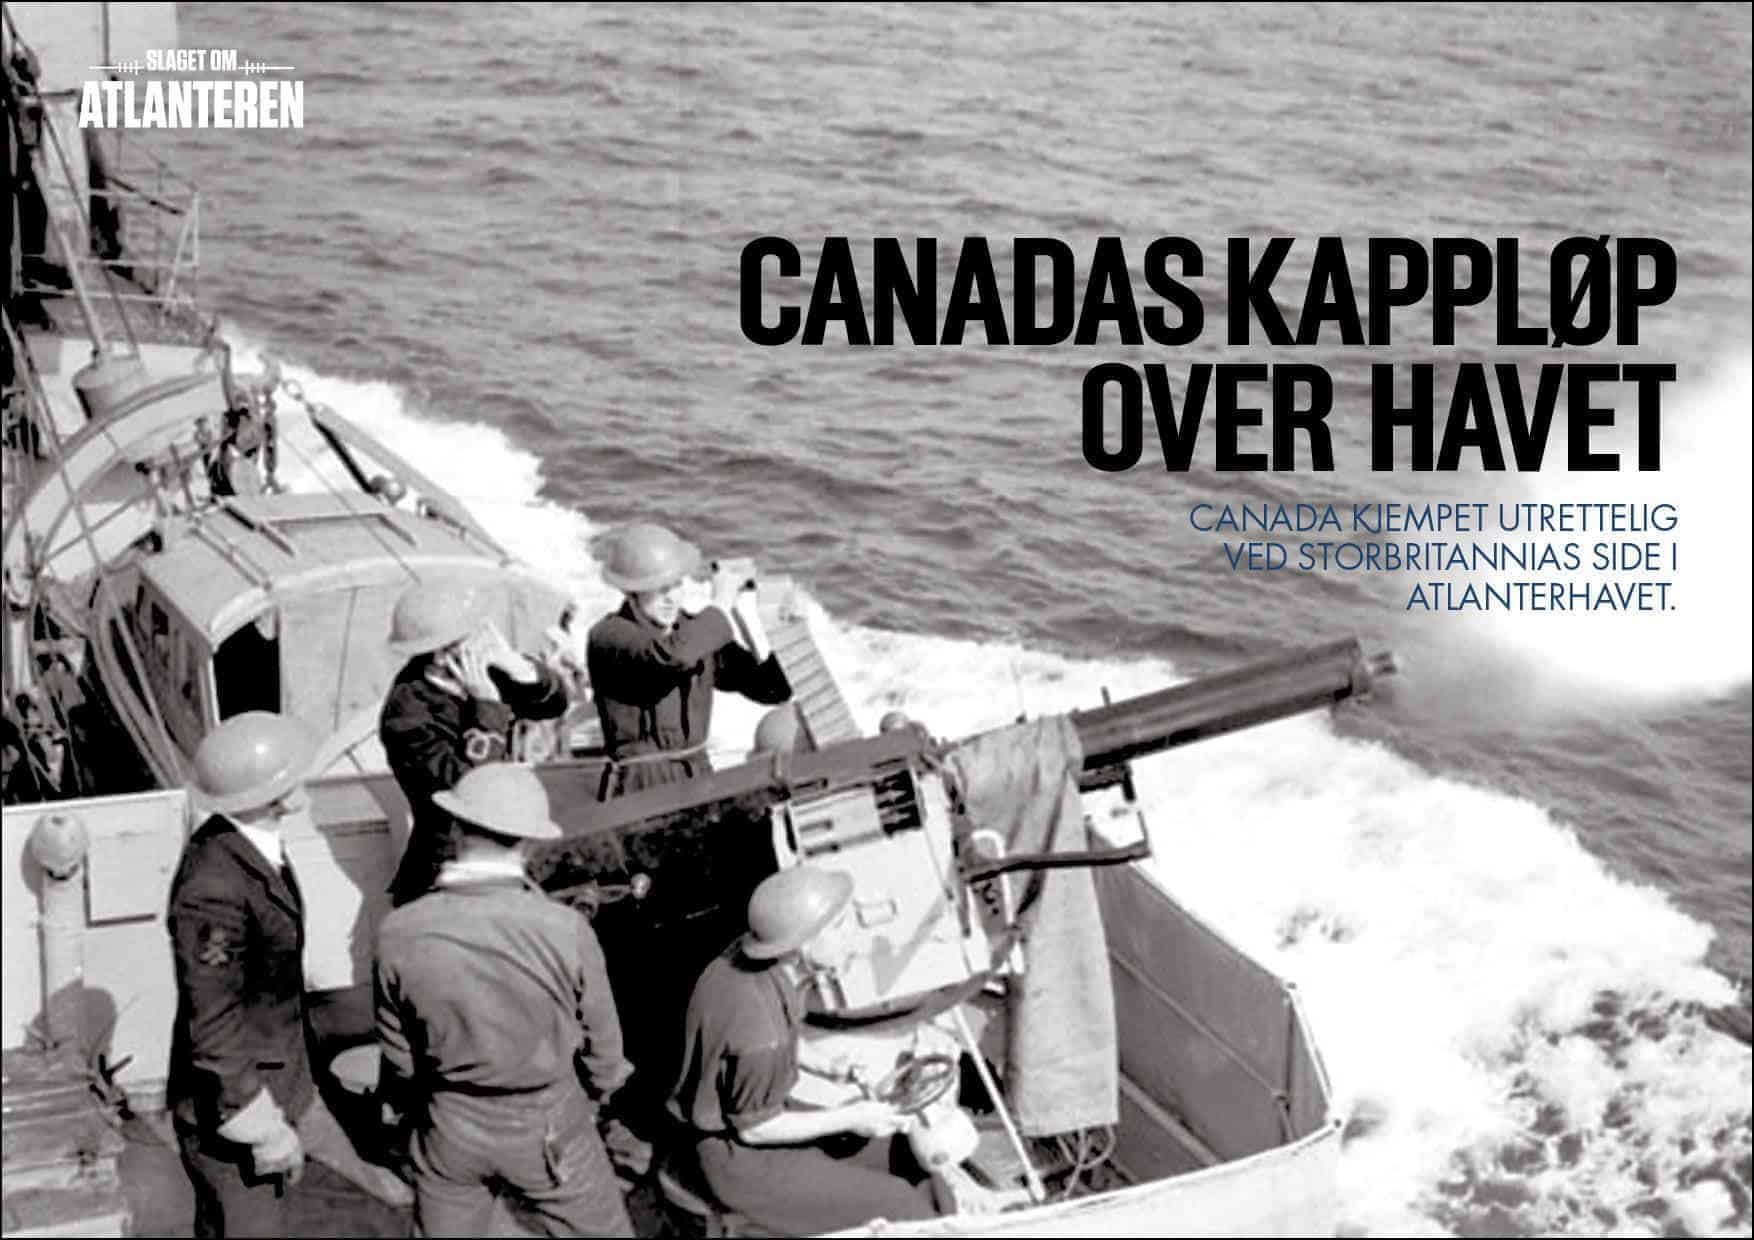 Canadas kappløp over havet